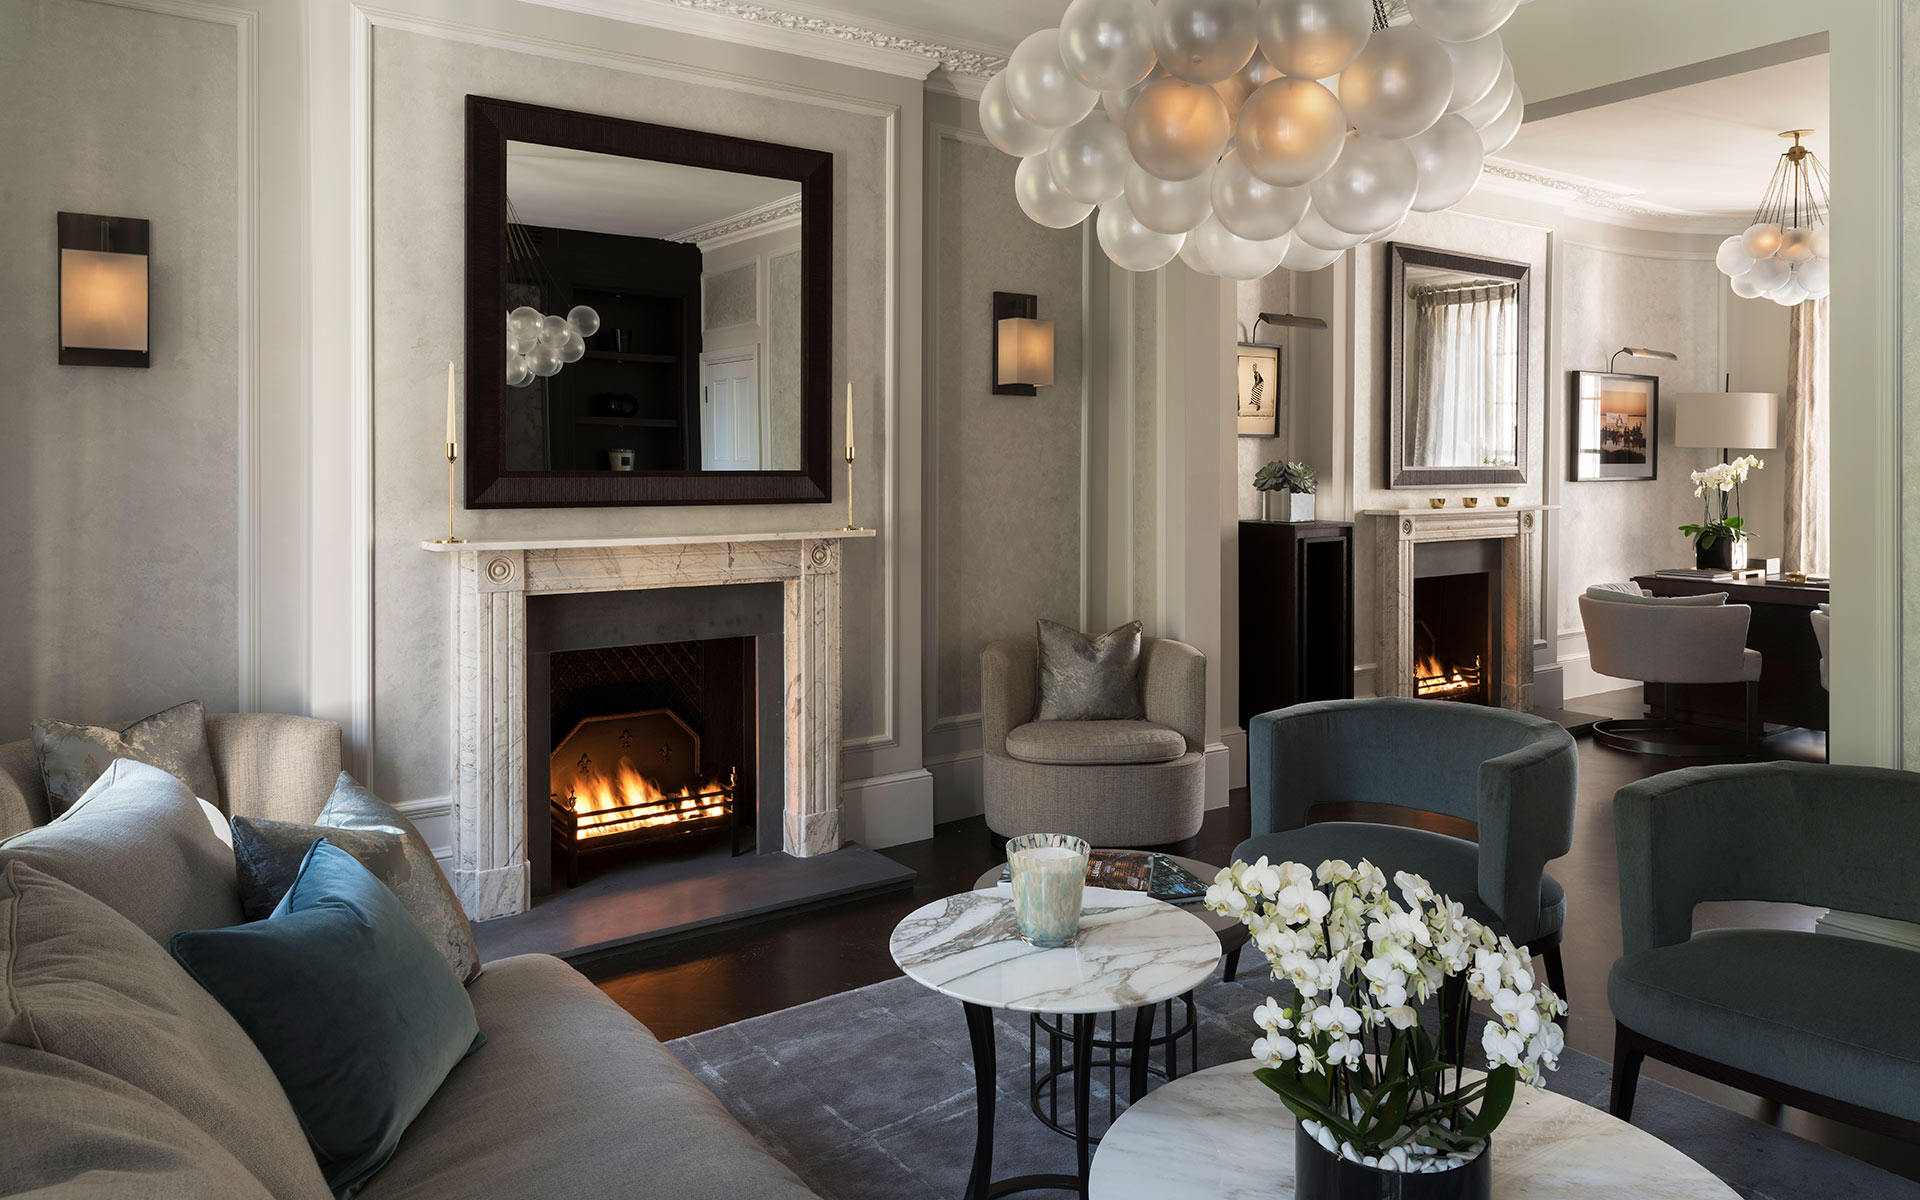 Lux residential interiors